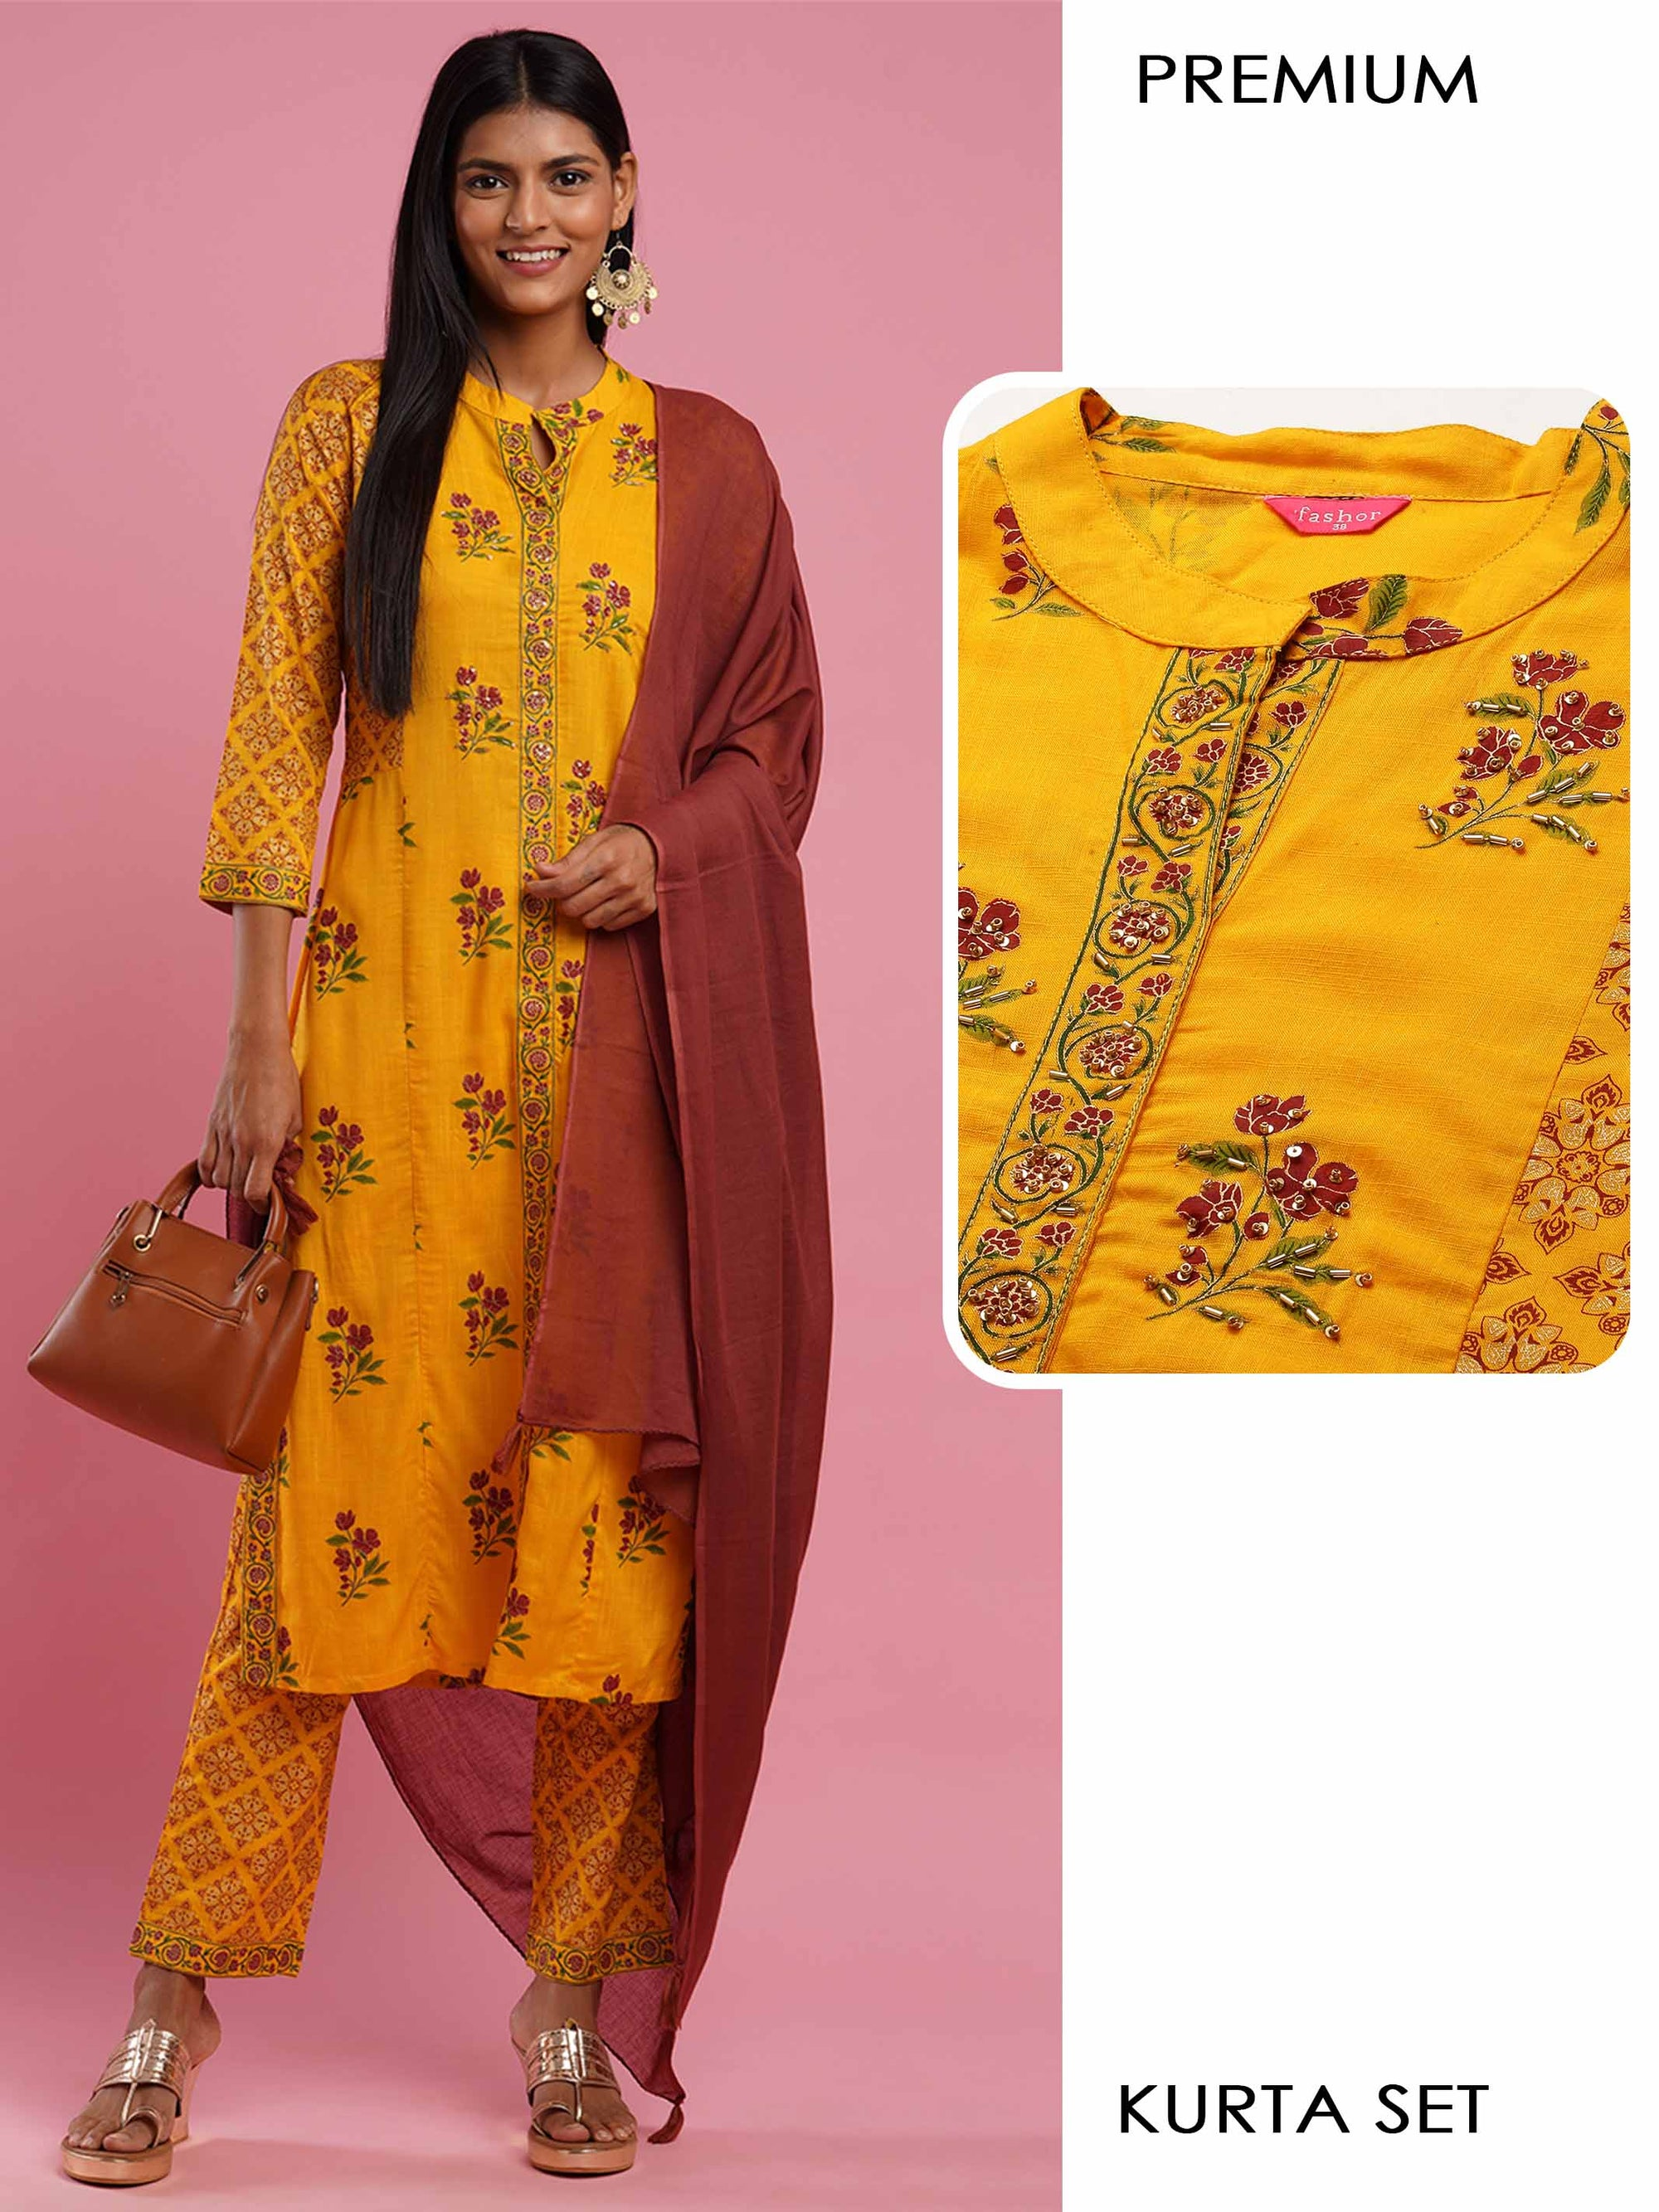 Floral Mix Printed Kurta with Dense Ethnic Printed Palazzo & Contrast Solid Dupatta - Yellow